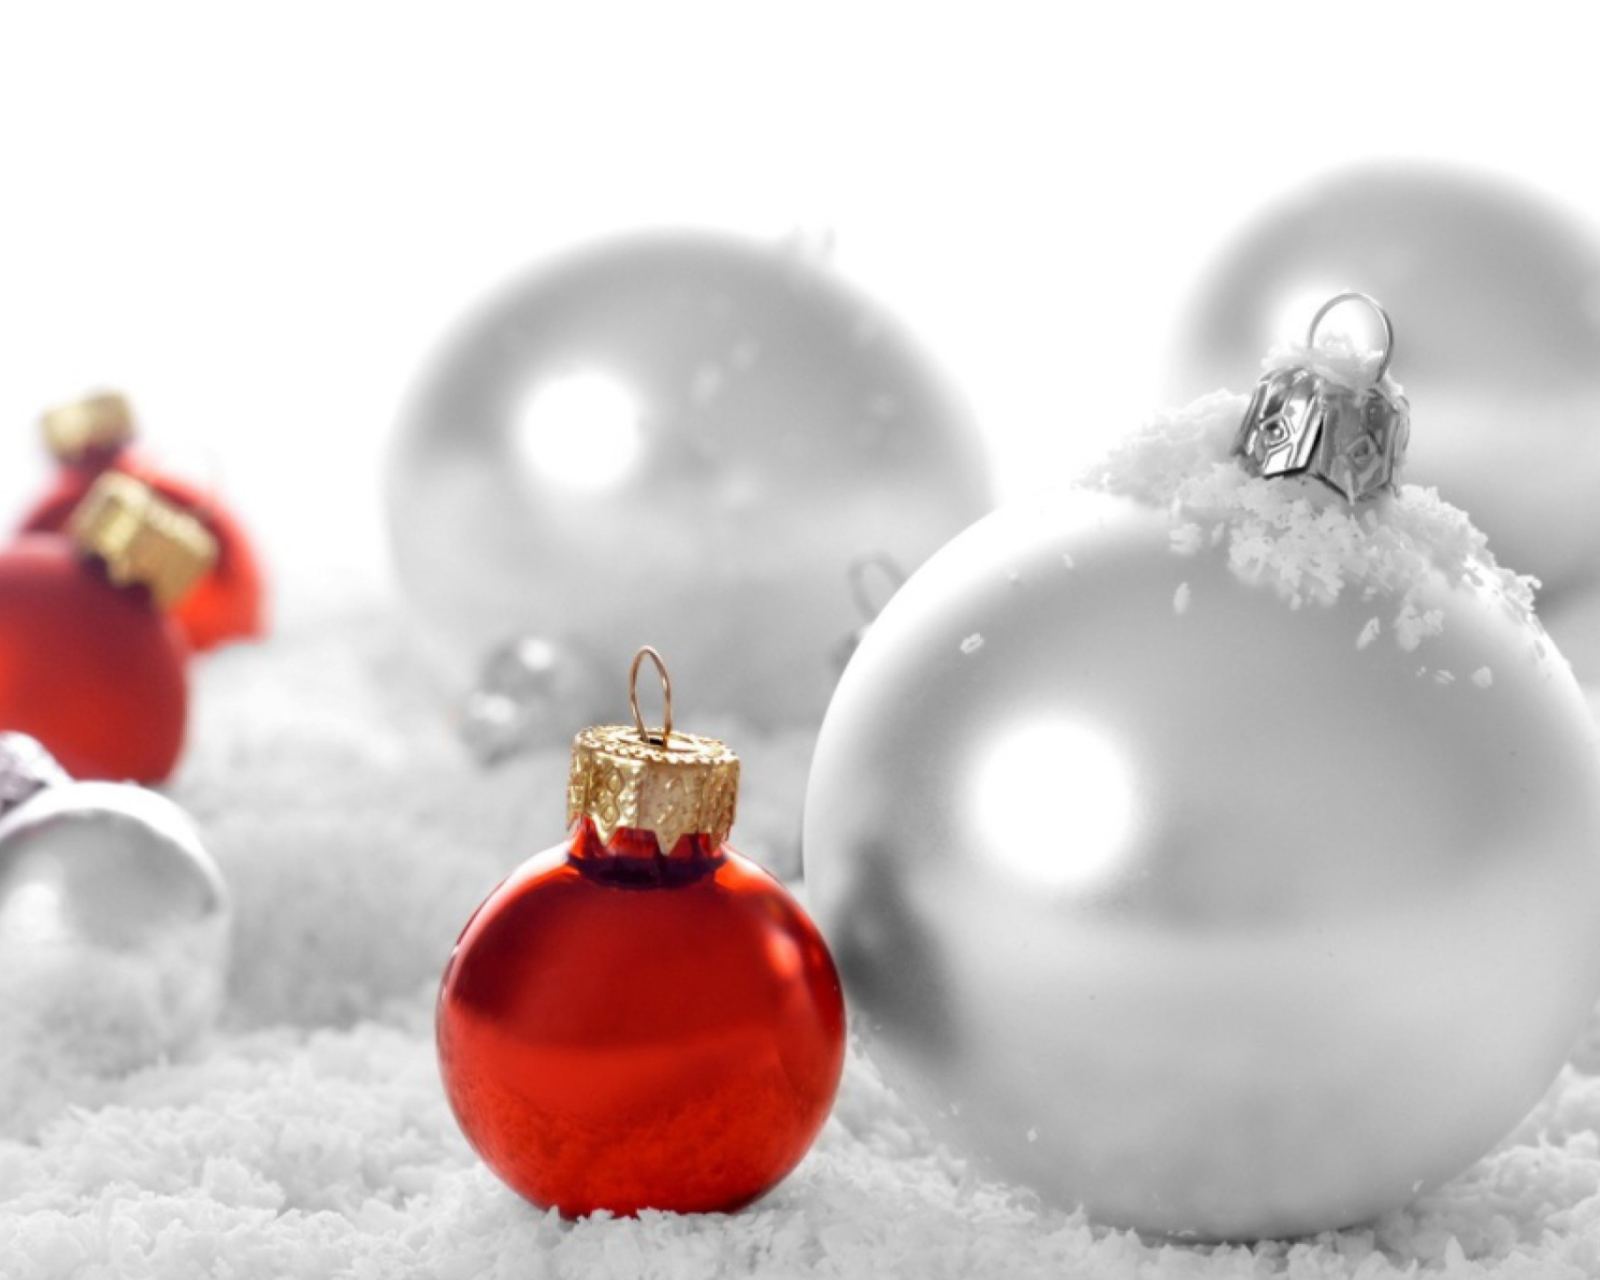 Christmas Decorations wallpaper 1600x1280